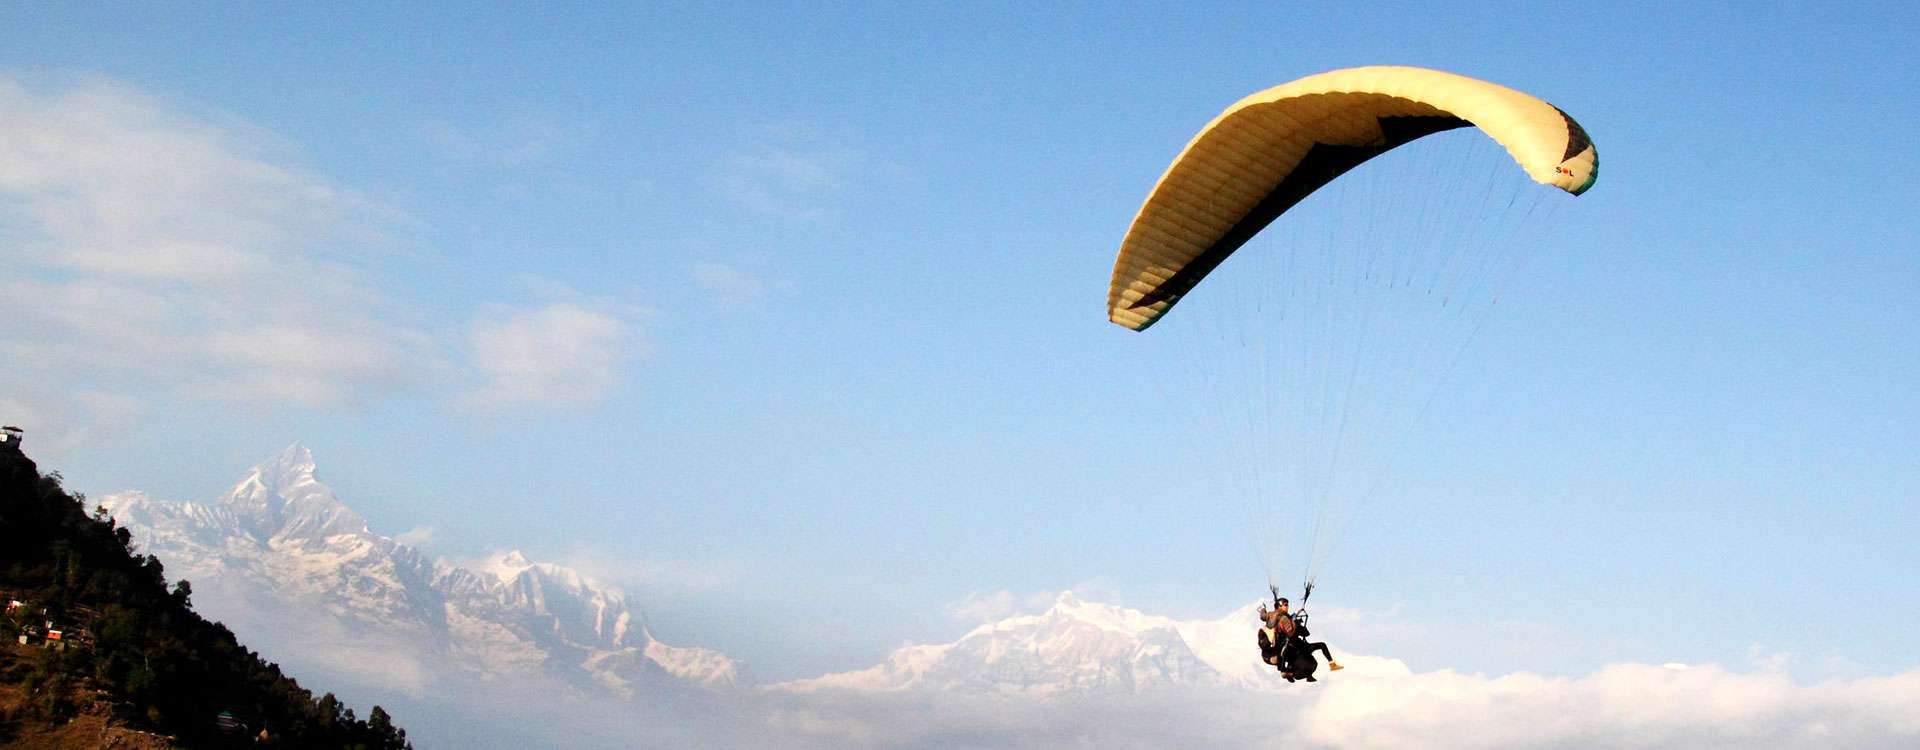 Nepal paragliding and Ultralight Tour